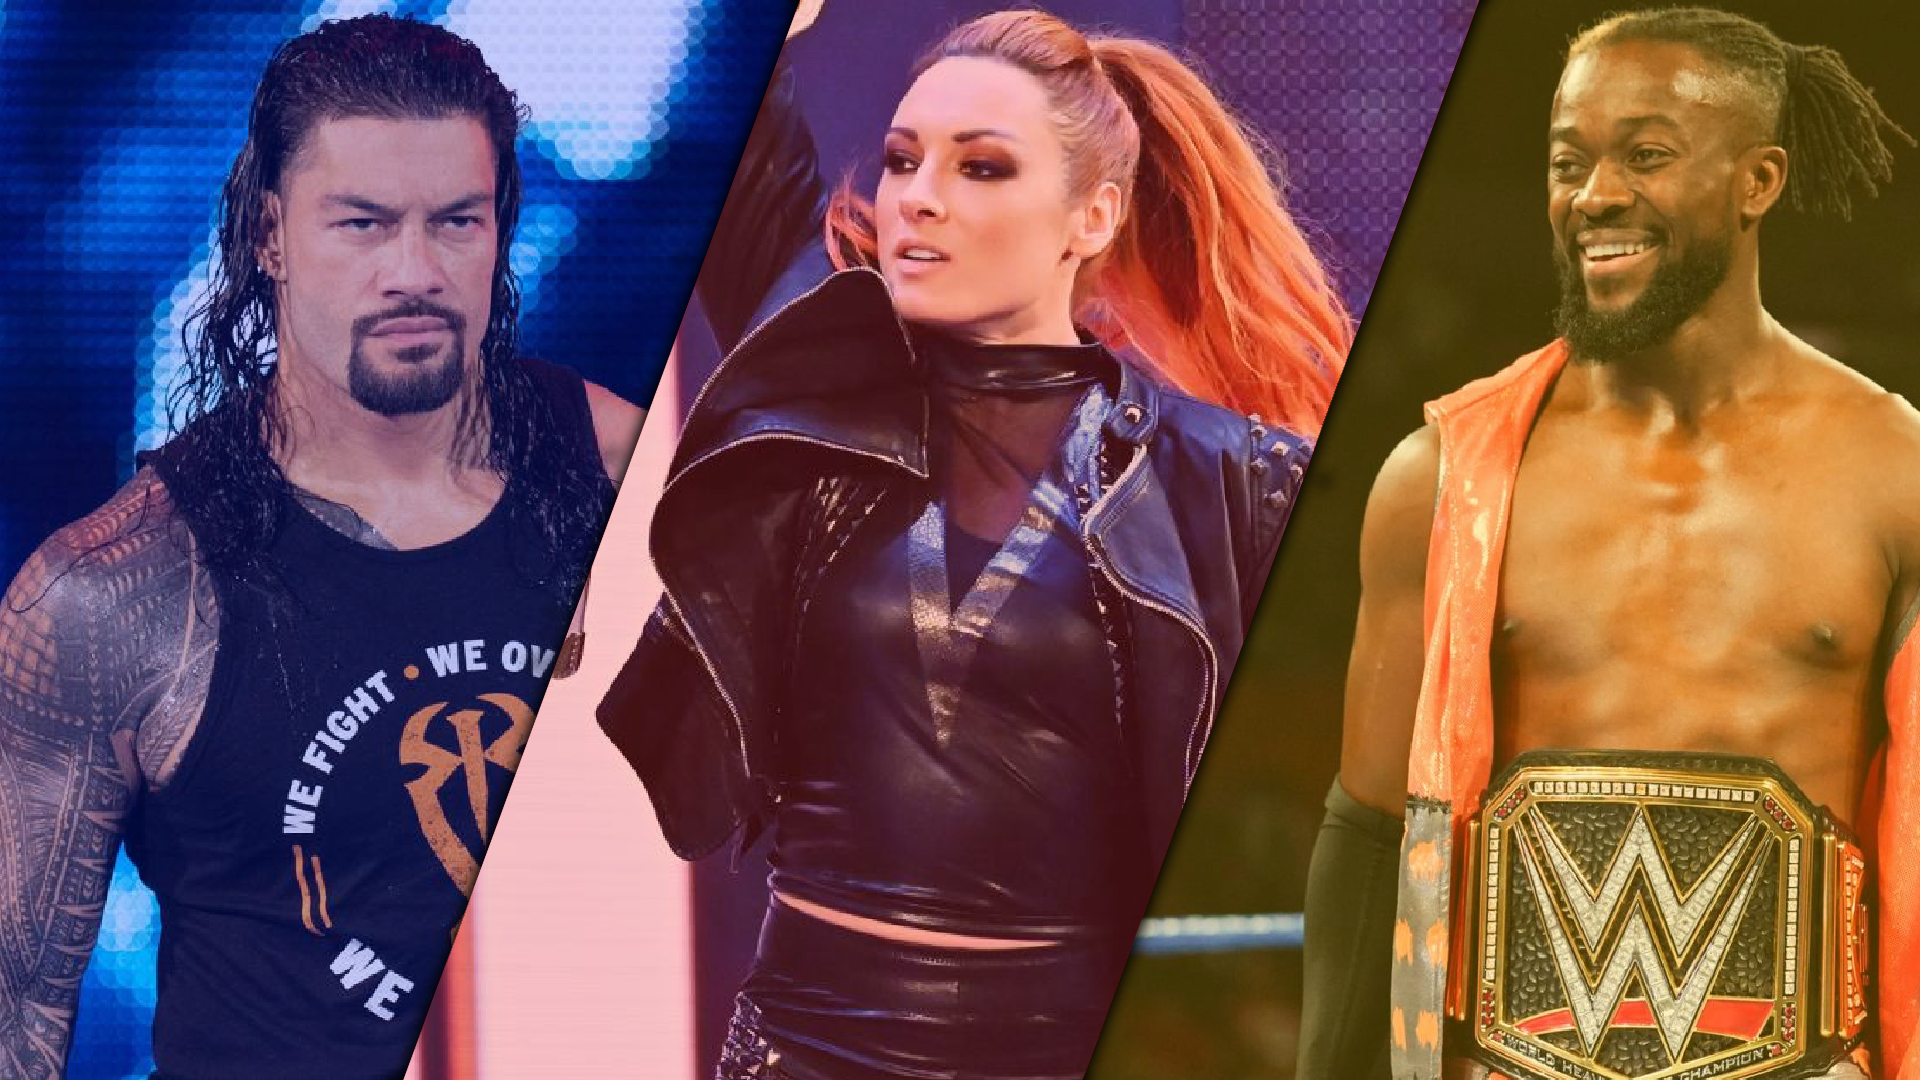 Top 5 WWE Stories of 2019 screen capture